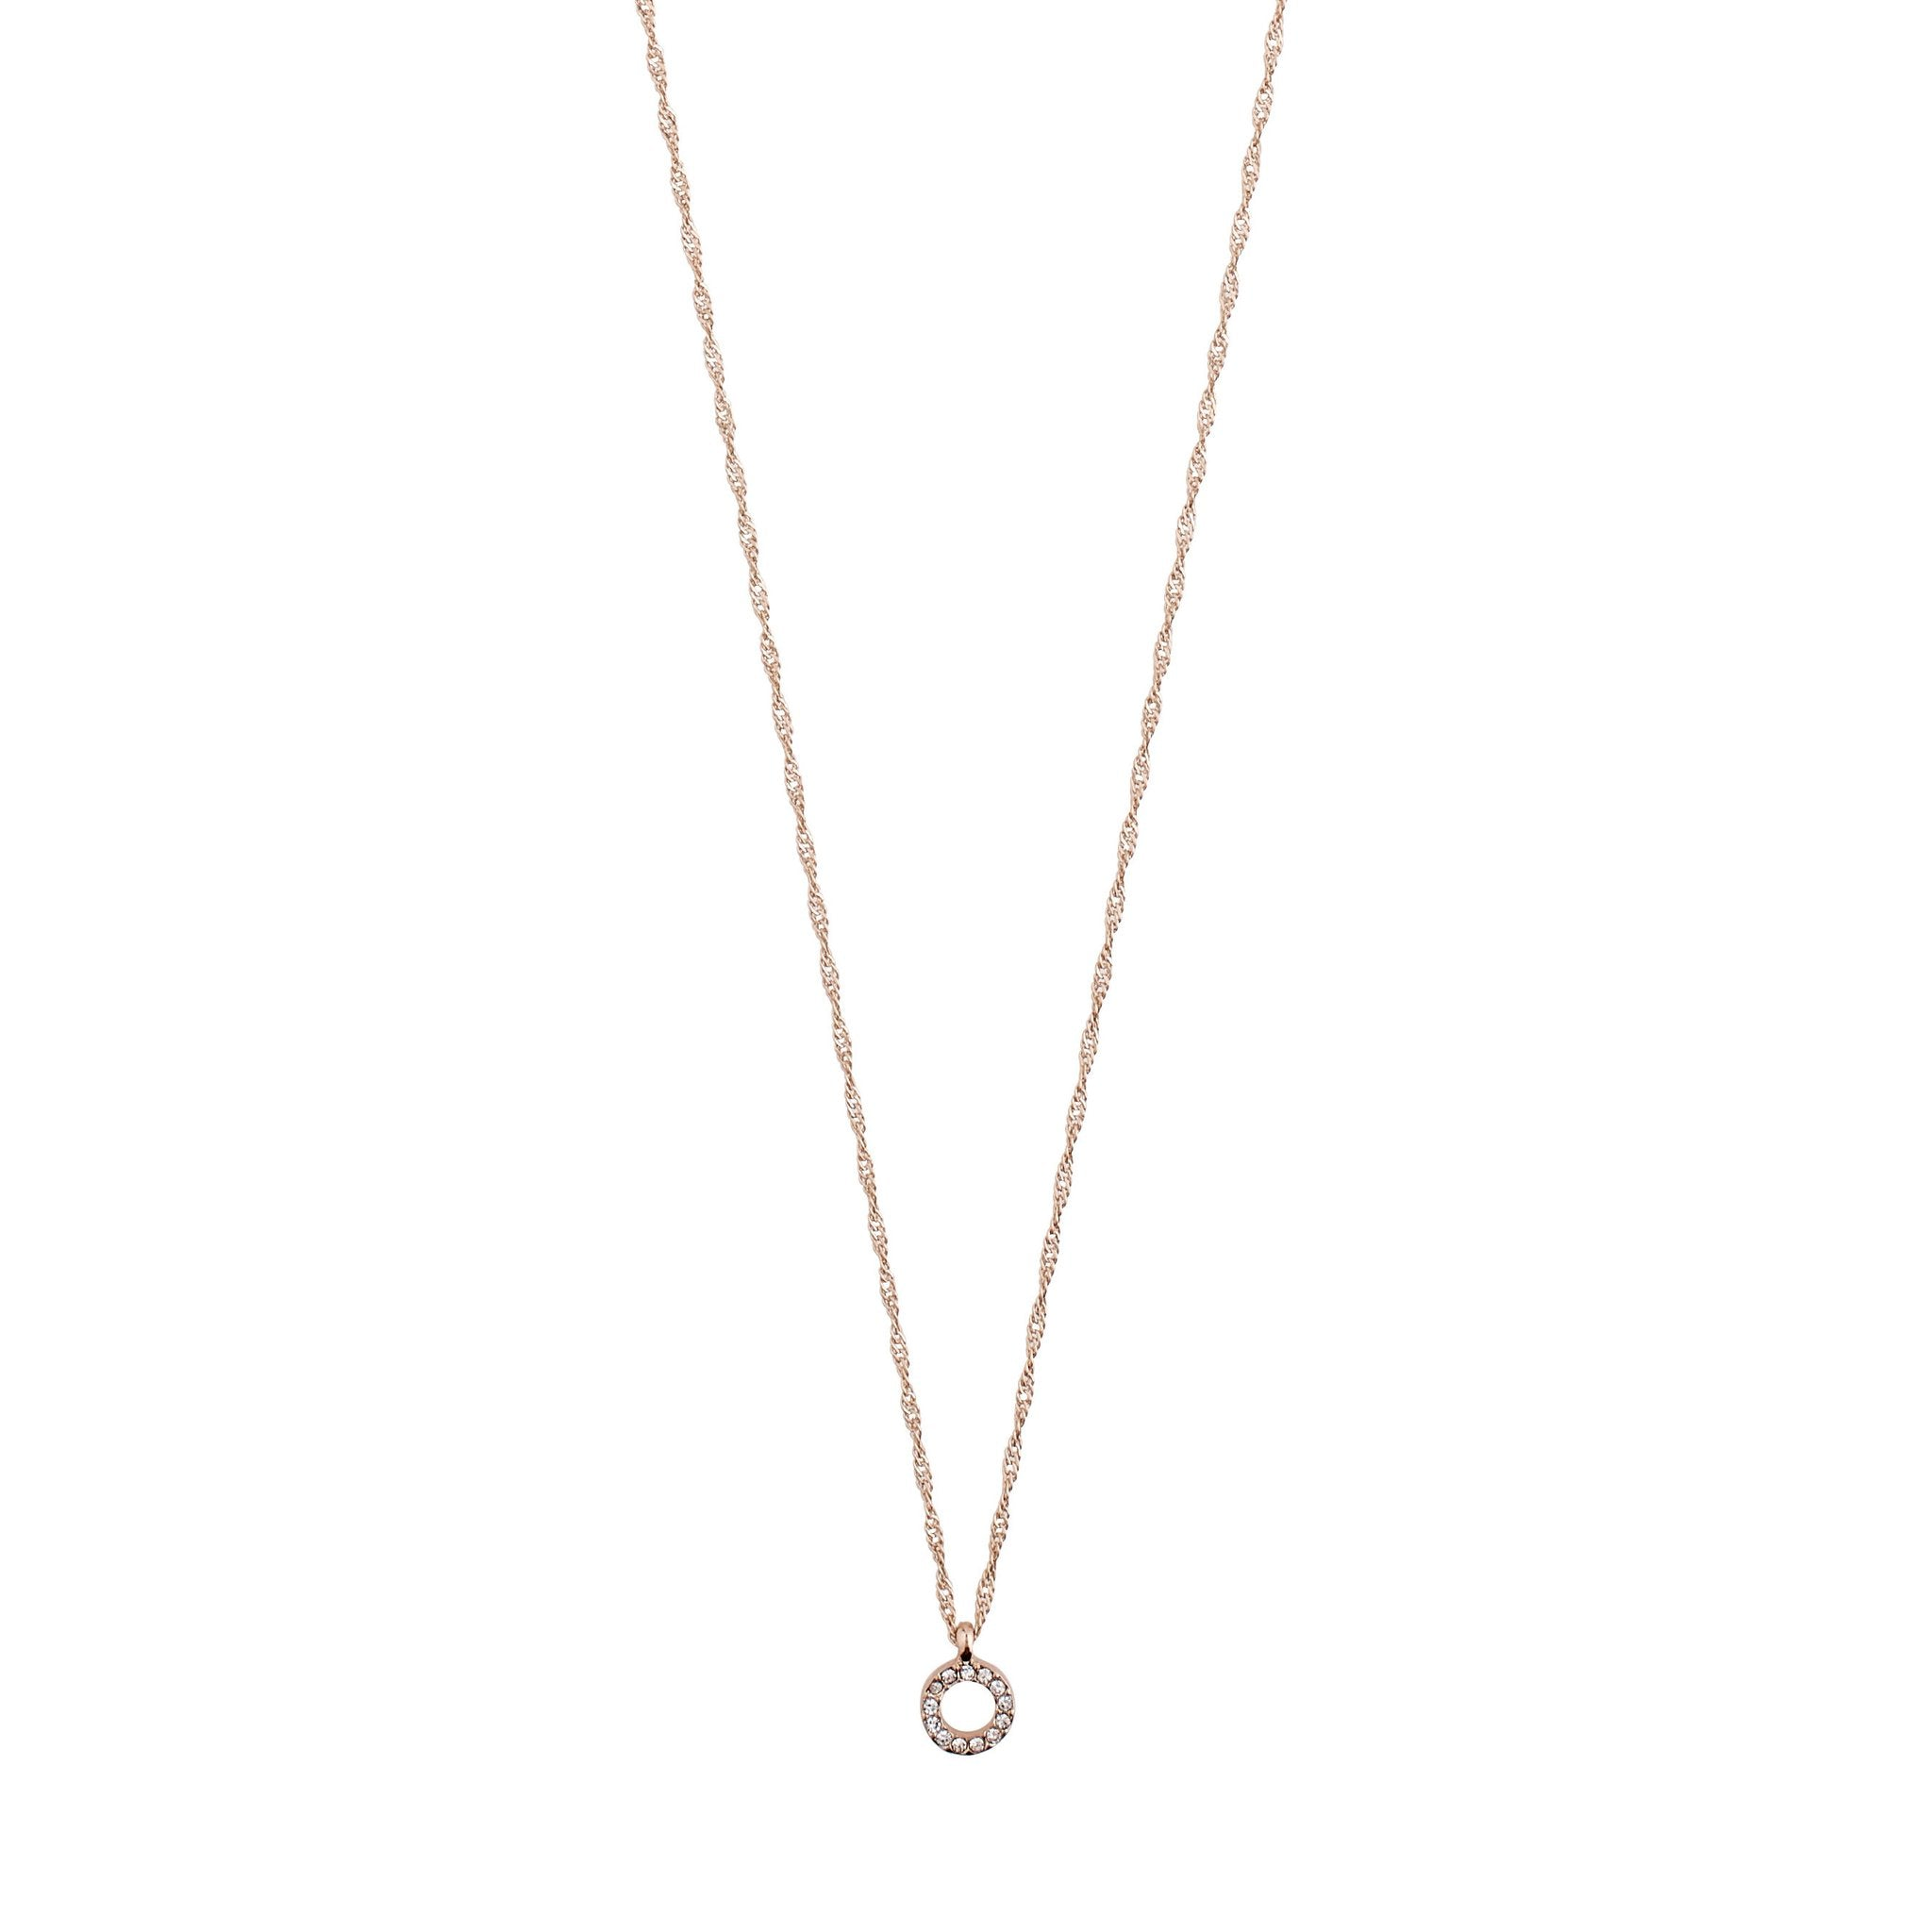 Tessa Necklace - Rose Gold